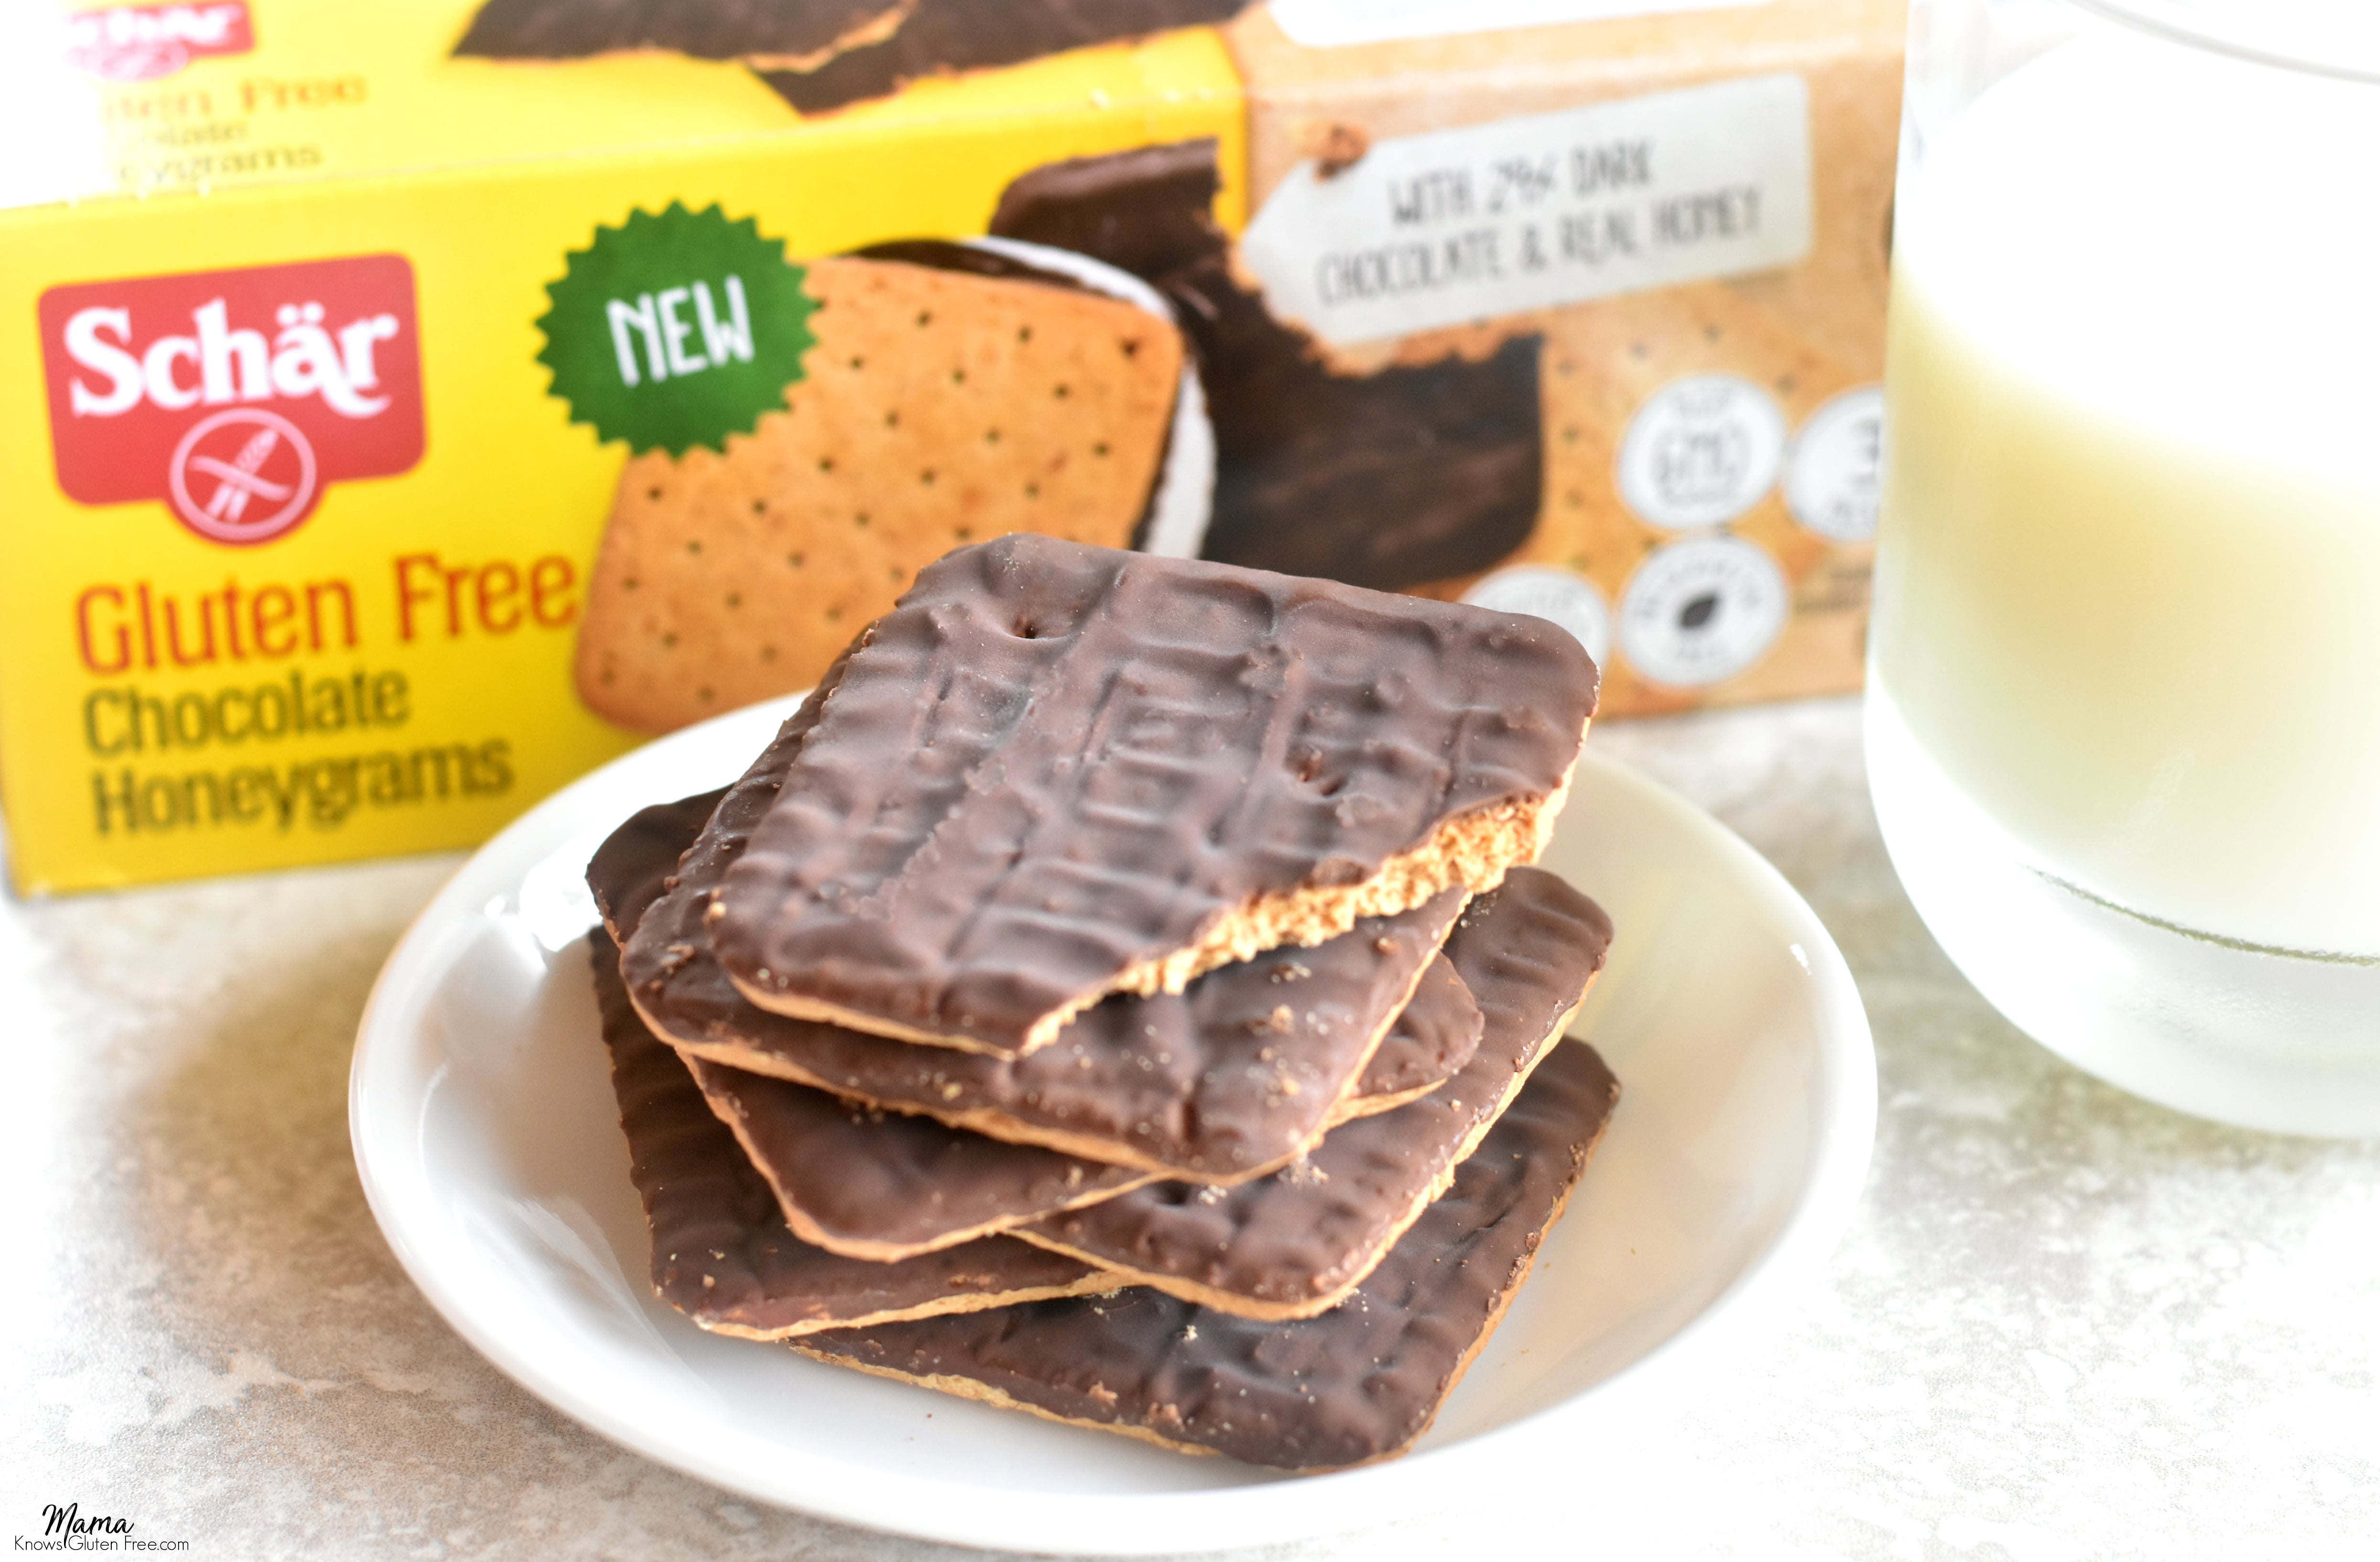 Schar gluten-free Chocolate Honeygrams cookies and milk.